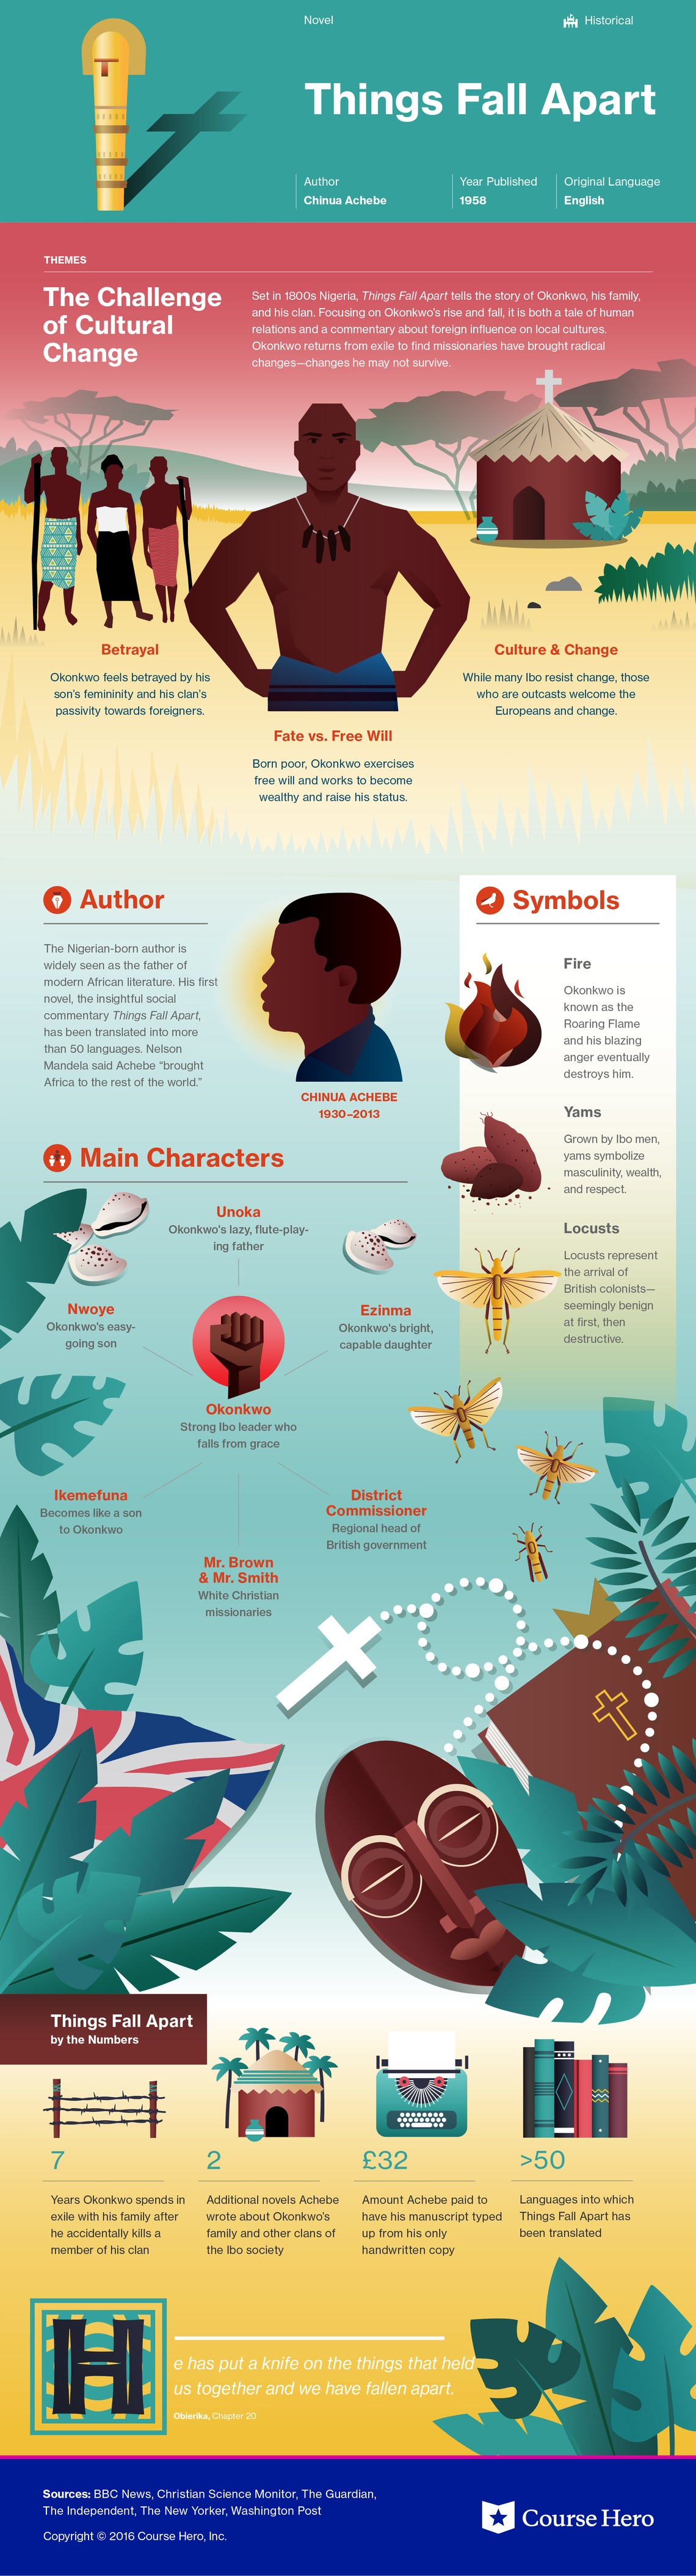 Things Fall Apart Infographic